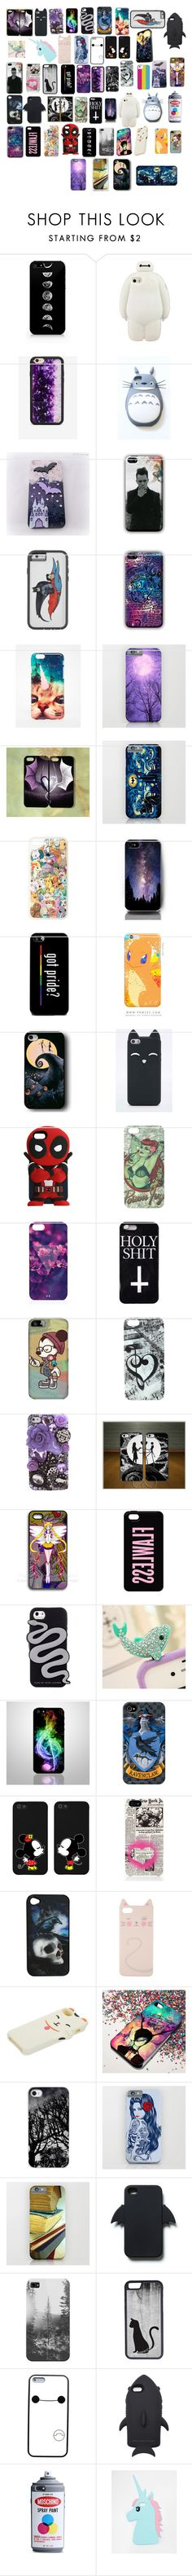 """Favorite Phone Cases (tagged)"" by lina-dunn ❤ liked on Polyvore featuring Wildflower, Mr. Gugu & Miss Go, Samsung, Anna Sui, Usagi, Marc by Marc Jacobs, Miss Girl, Disney, Kate Spade and Zara"